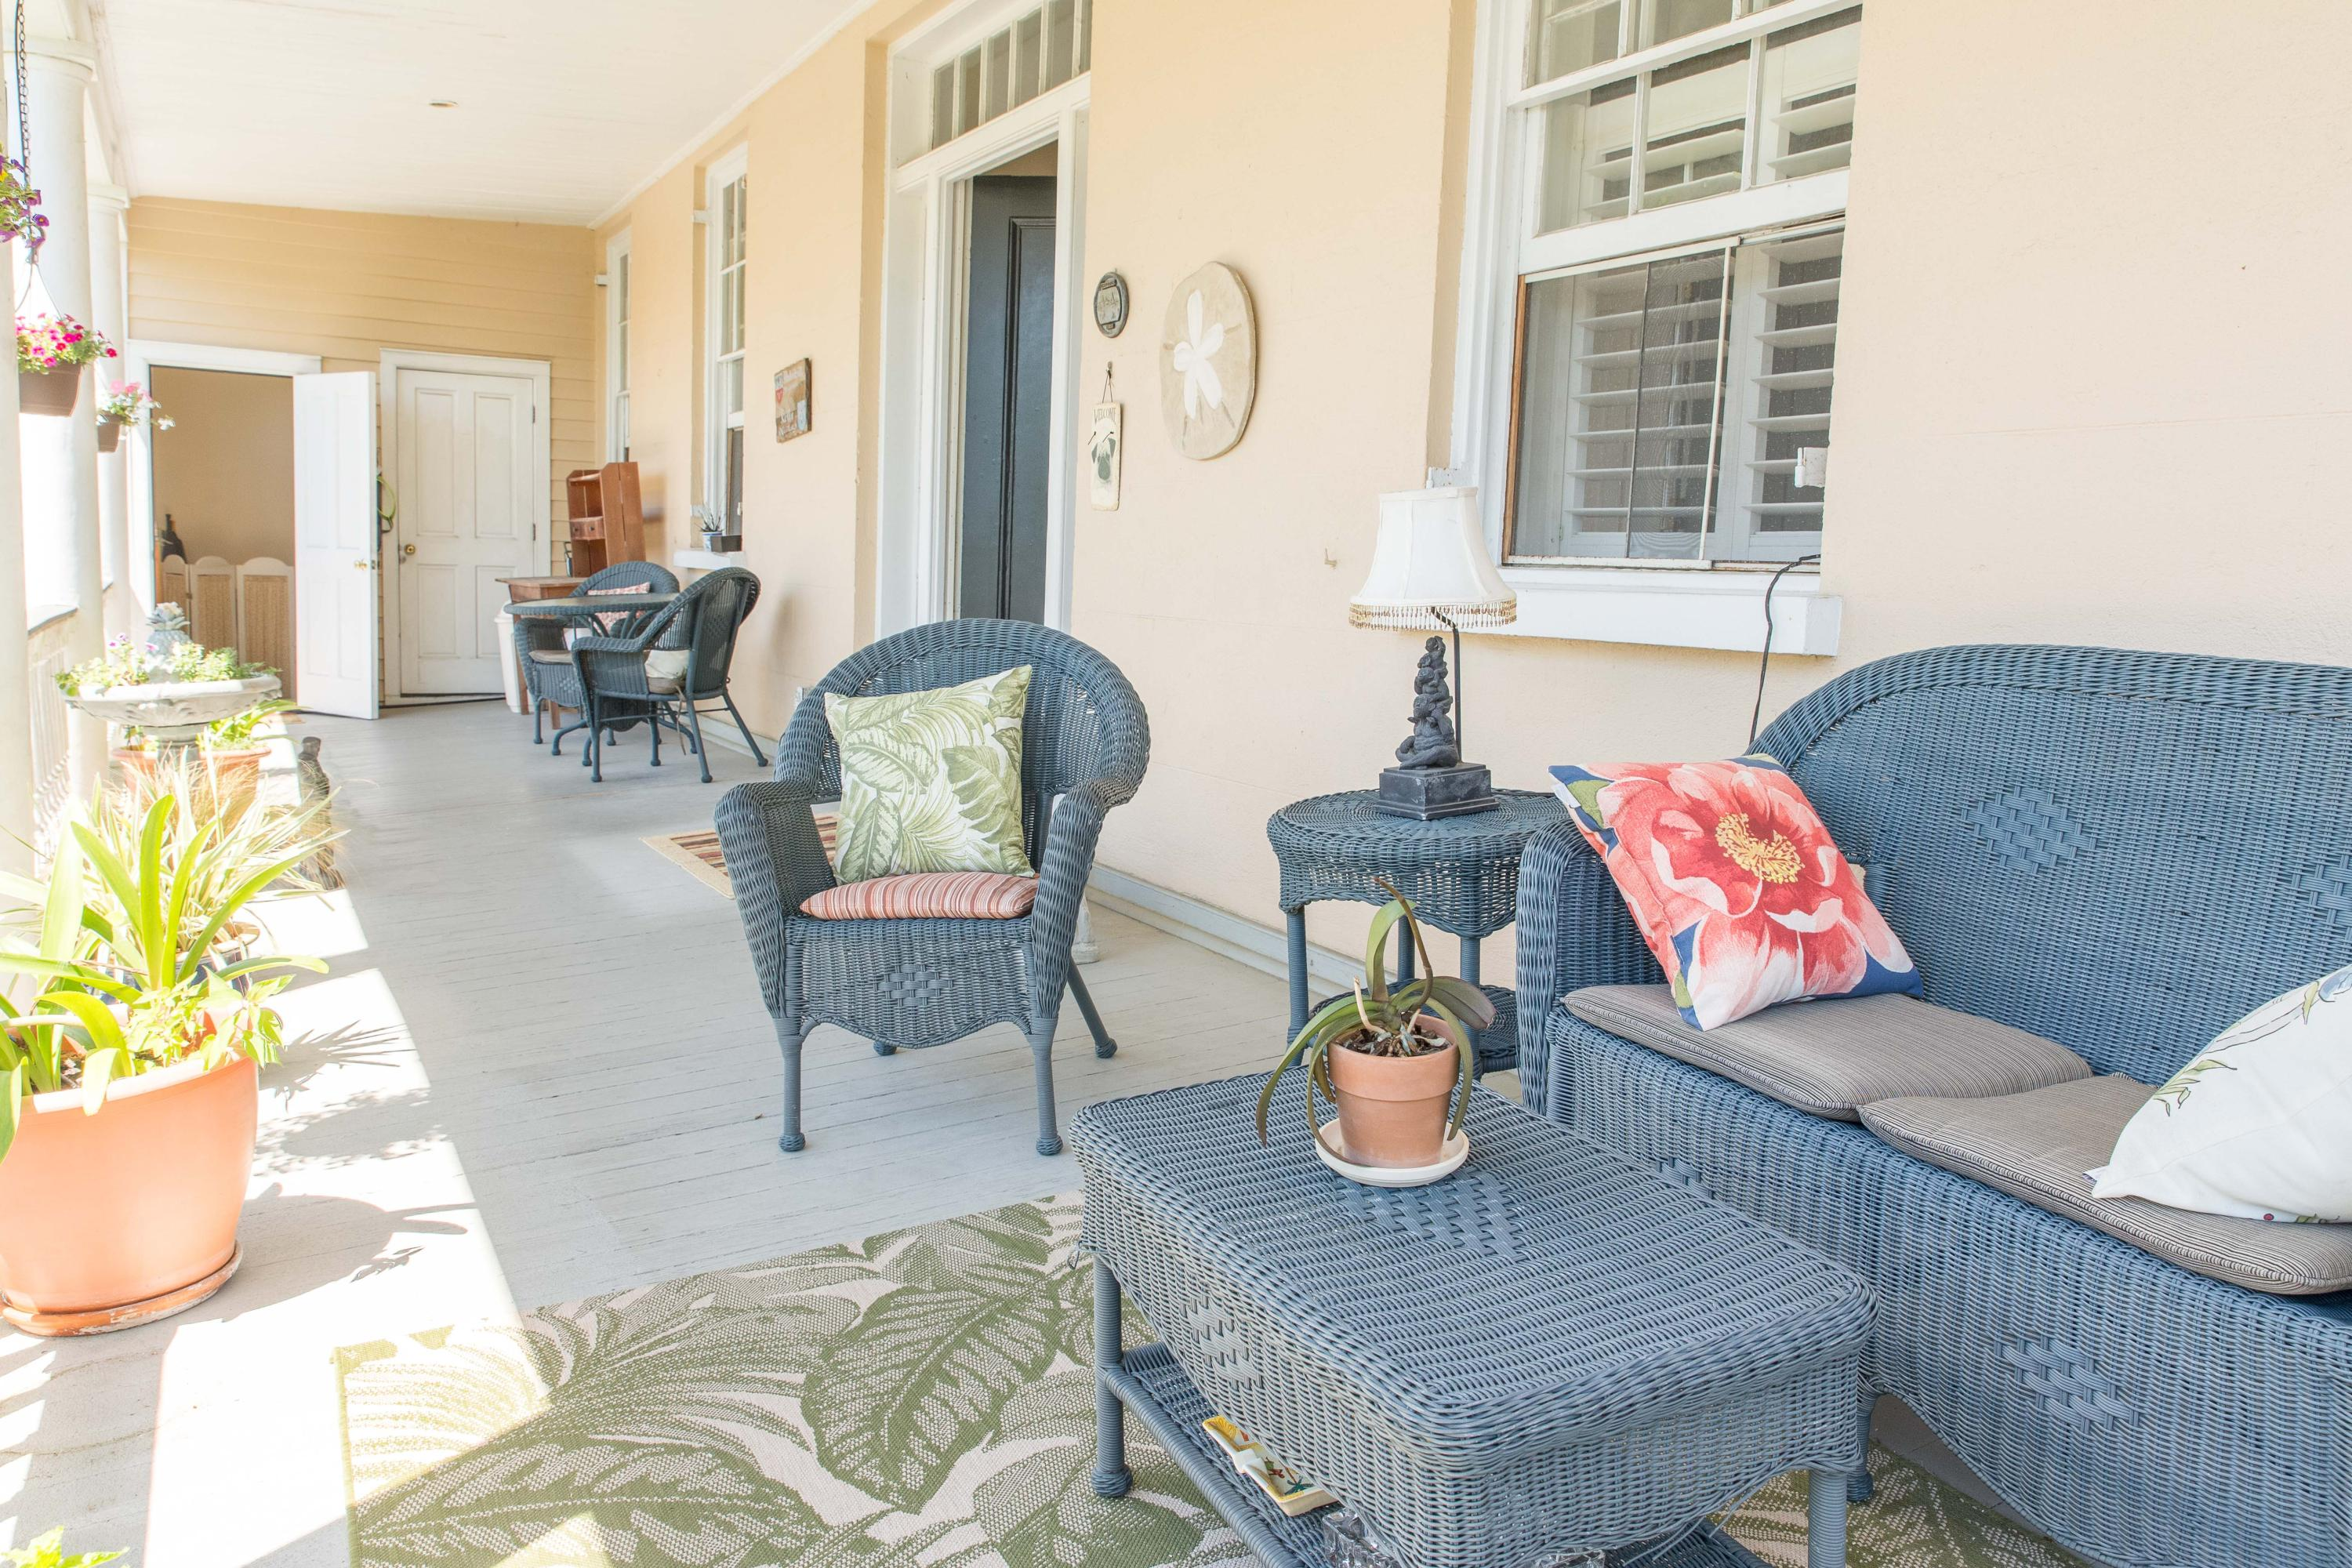 Home for sale 95 Ashley Avenue, Harleston Village, Downtown Charleston, SC